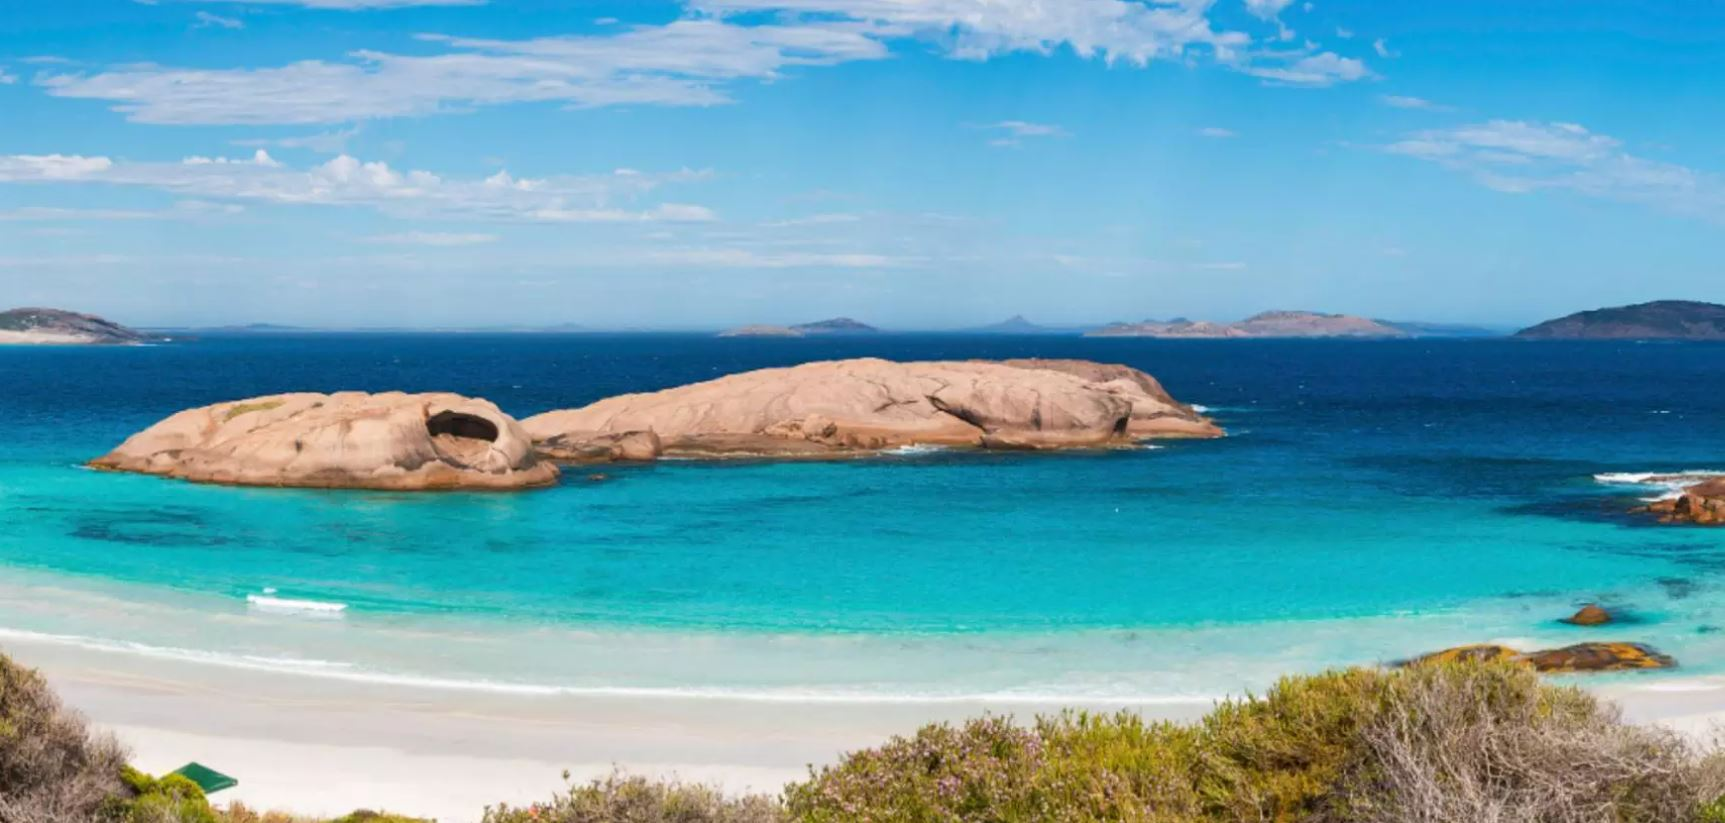 Tourism Australia's New Multi-Sensory Videos Capture the Sights and Sounds of the Country's Most Stunning Spots | Concrete Playground Sydney